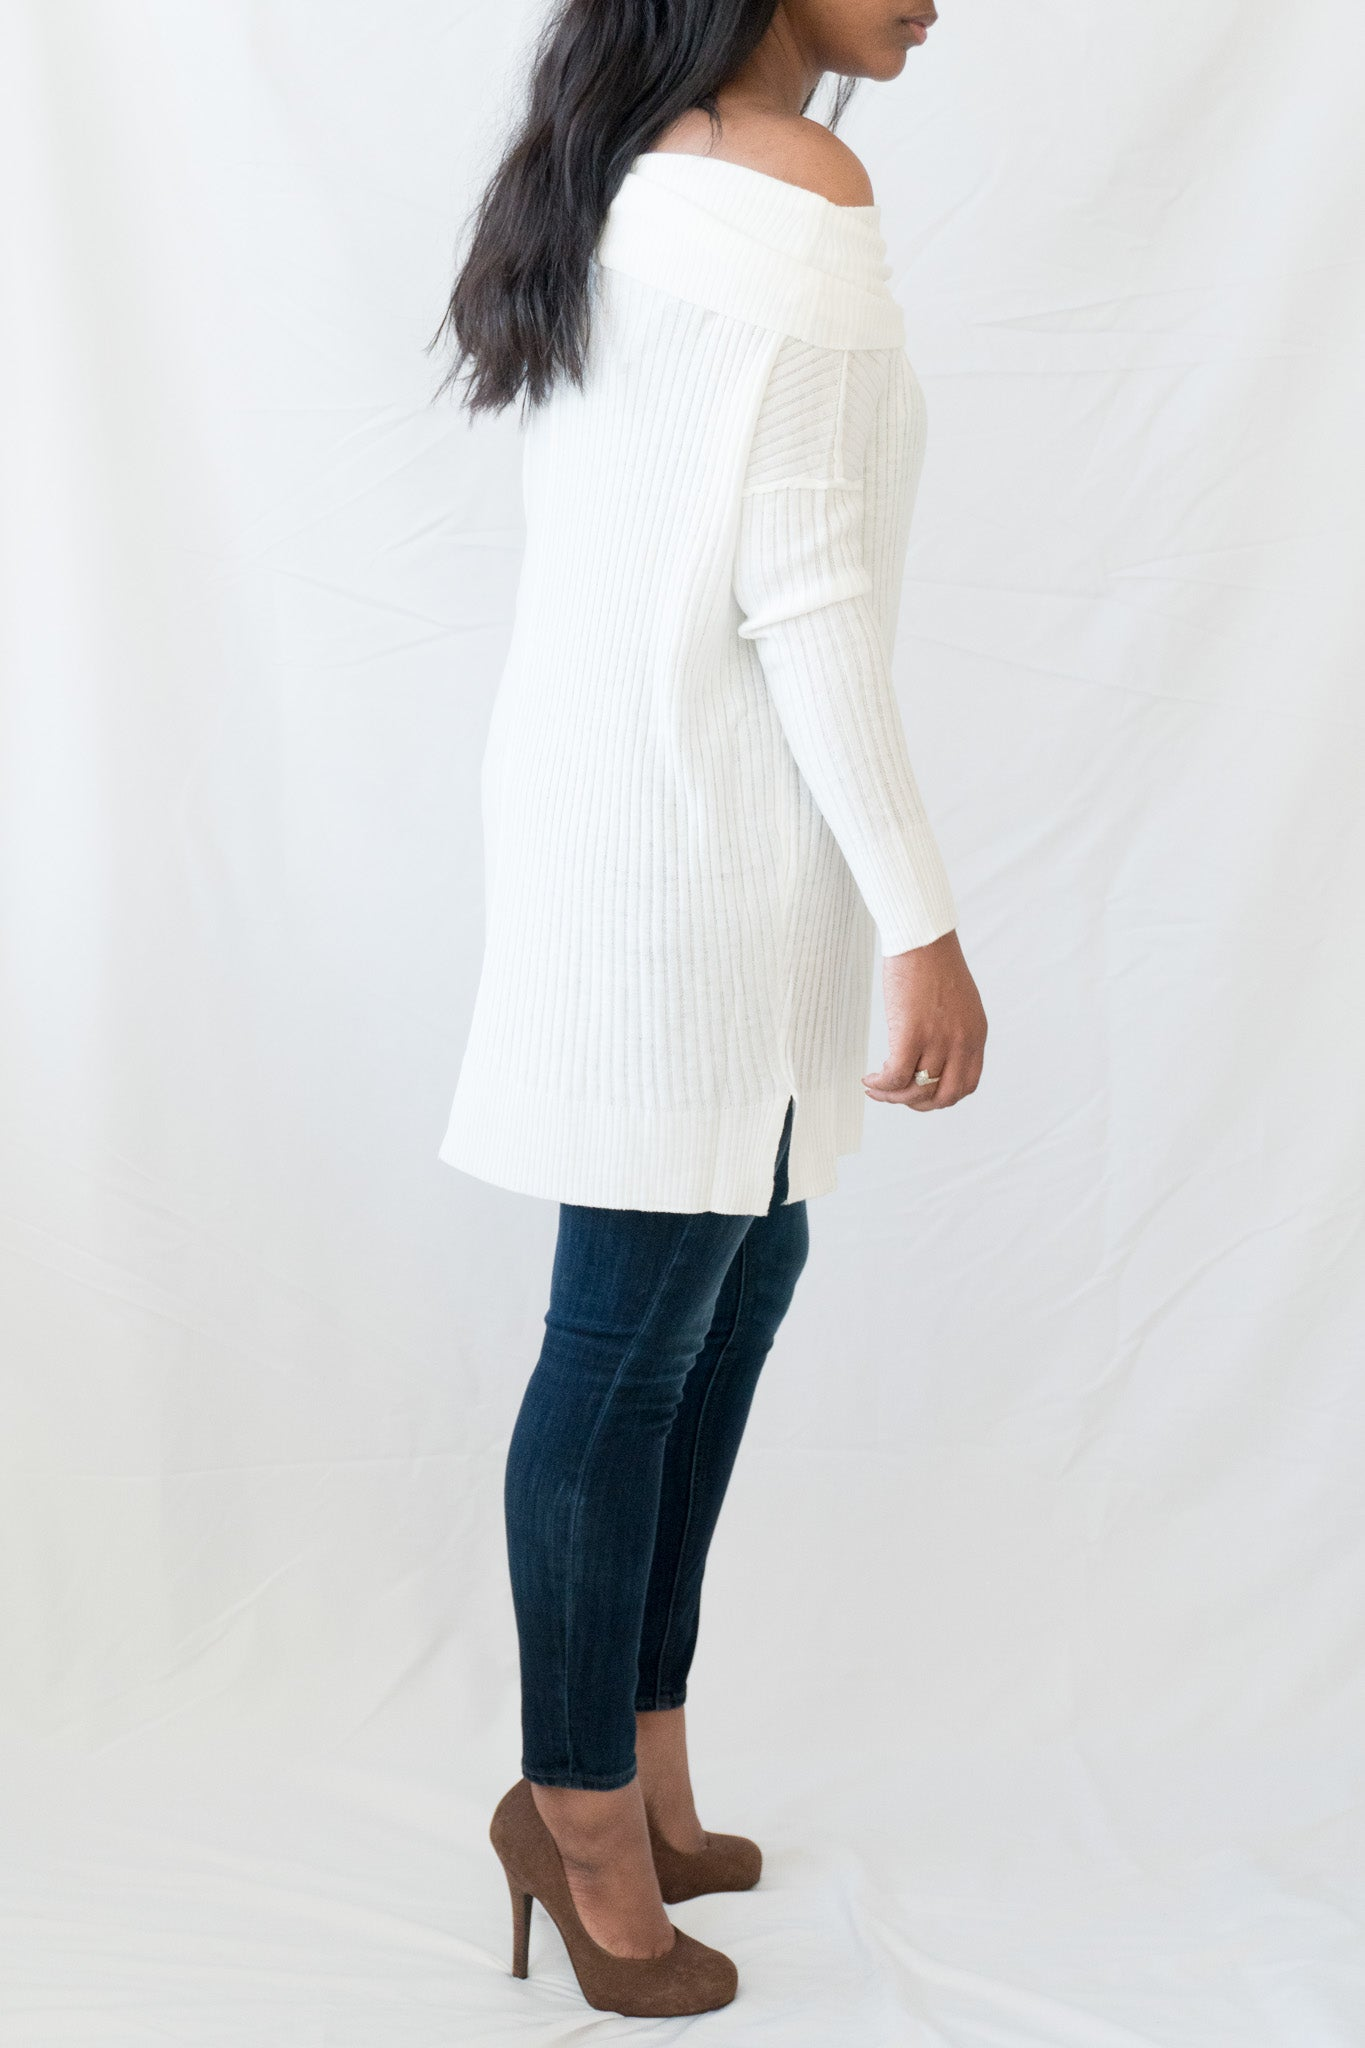 Cold Shoulder Knit Sweater - BLANK Wardrobe